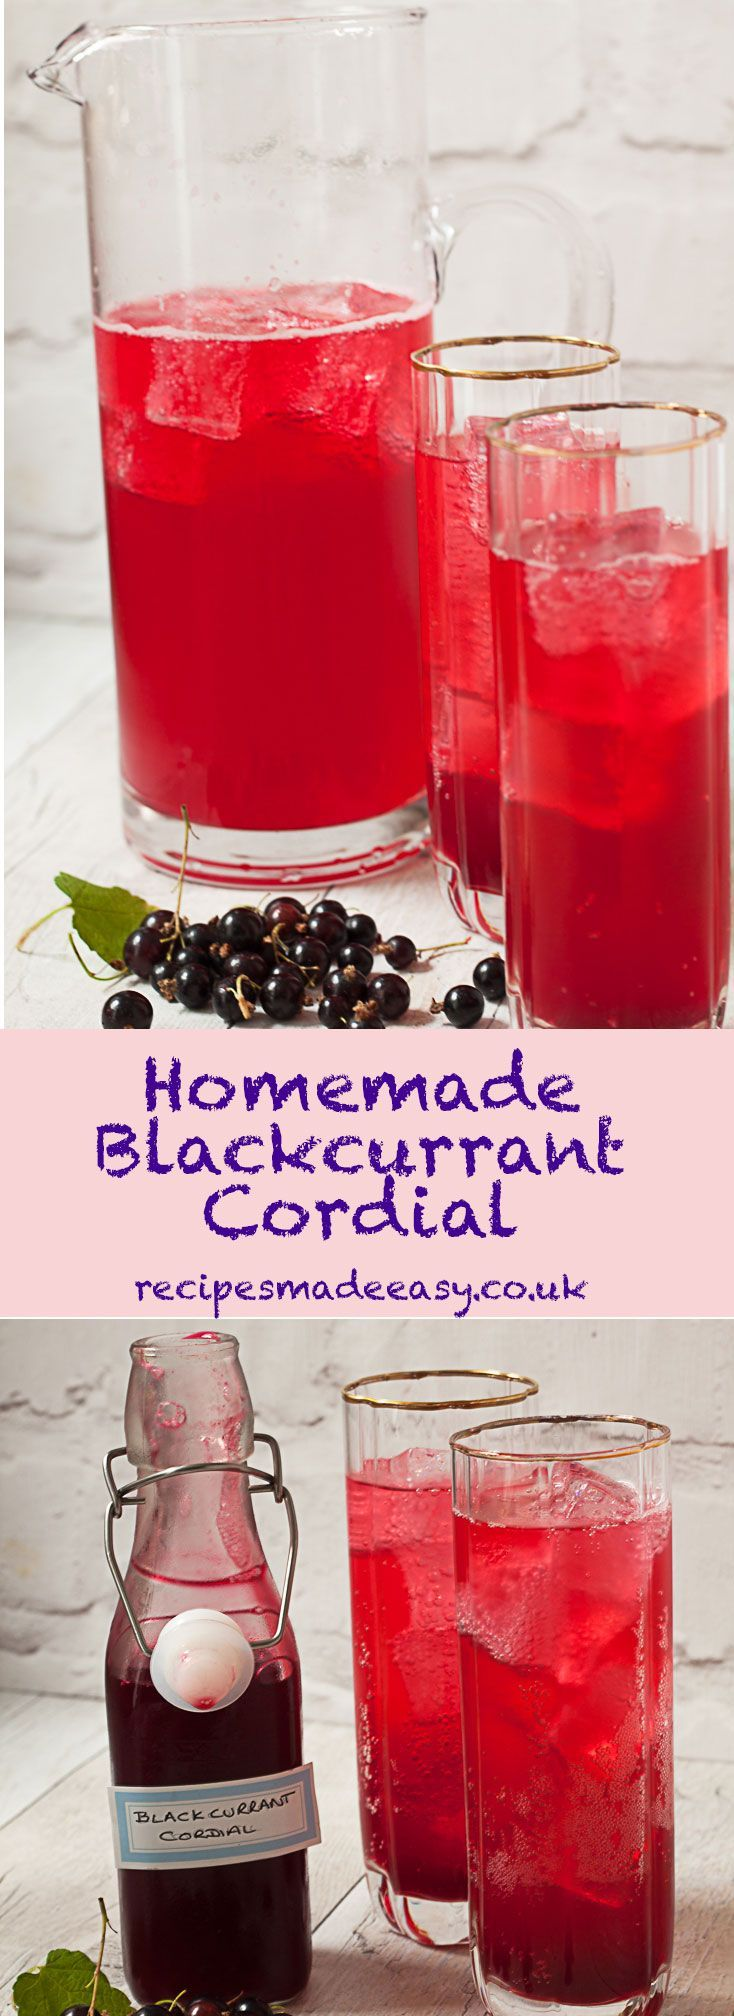 Homemade blackcurrant cordial by Recipes Made Easy-The perfect refreshing summer drink to make with a glut of homegrown or pick your own blackcurrants. via @jacdotbee